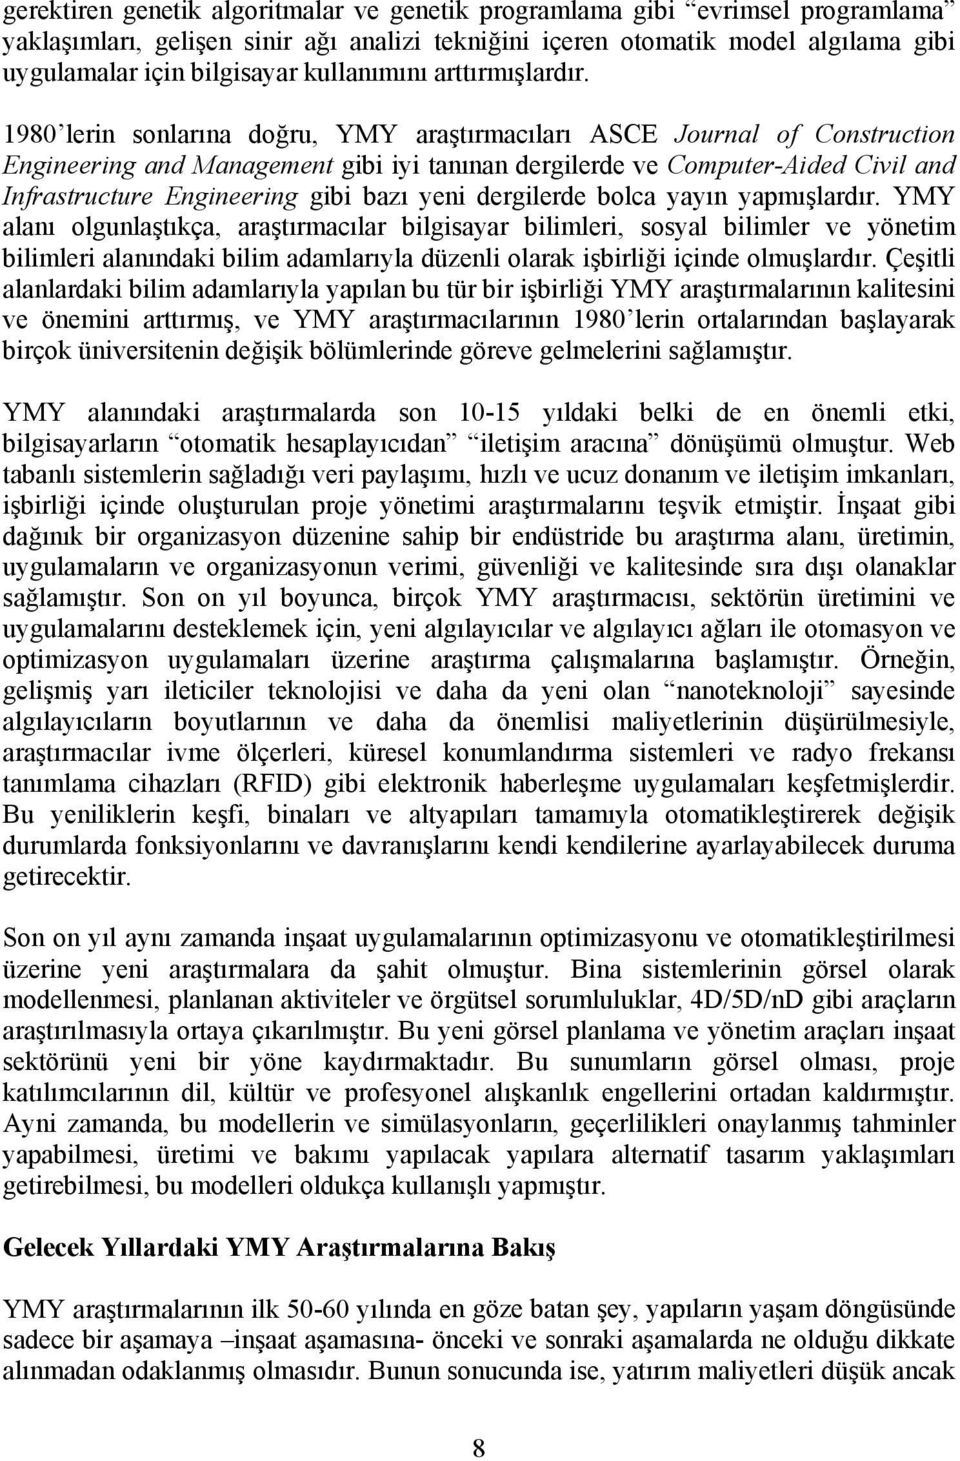 1980 lerin sonlarına doğru, YMY araştırmacıları ASCE Journal of Construction Engineering and Management gibi iyi tanınan dergilerde ve Computer-Aided Civil and Infrastructure Engineering gibi bazı